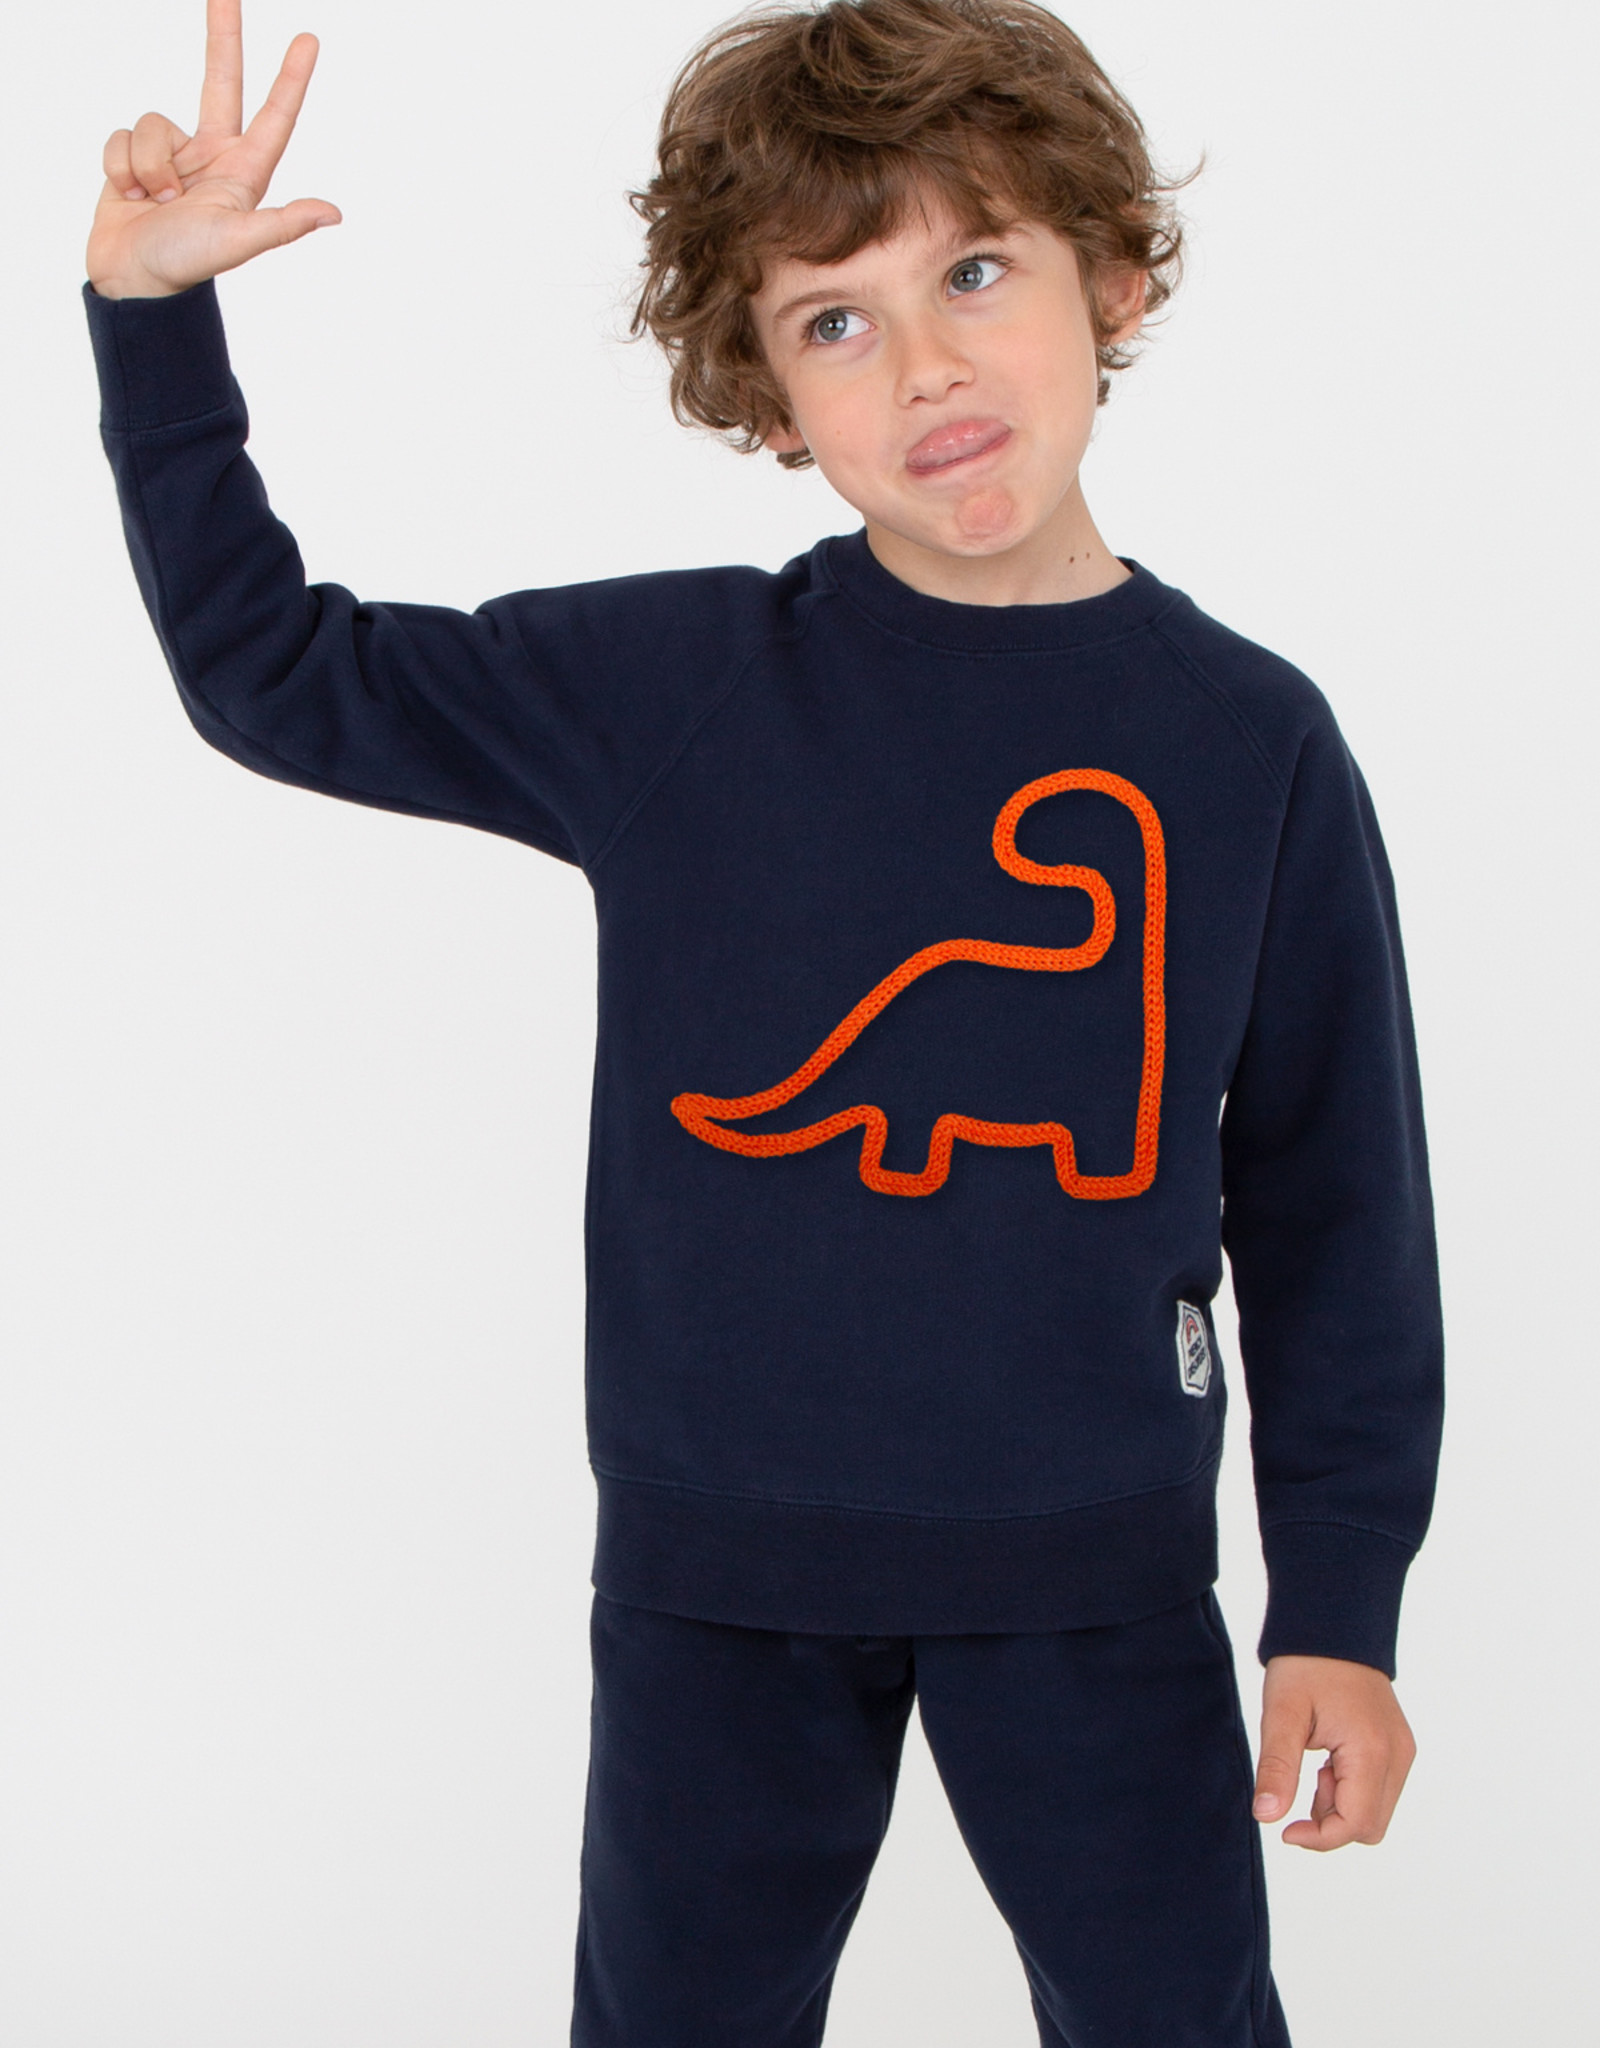 FRENCH DISORDER FRENCH DISORDER Sweater Dino